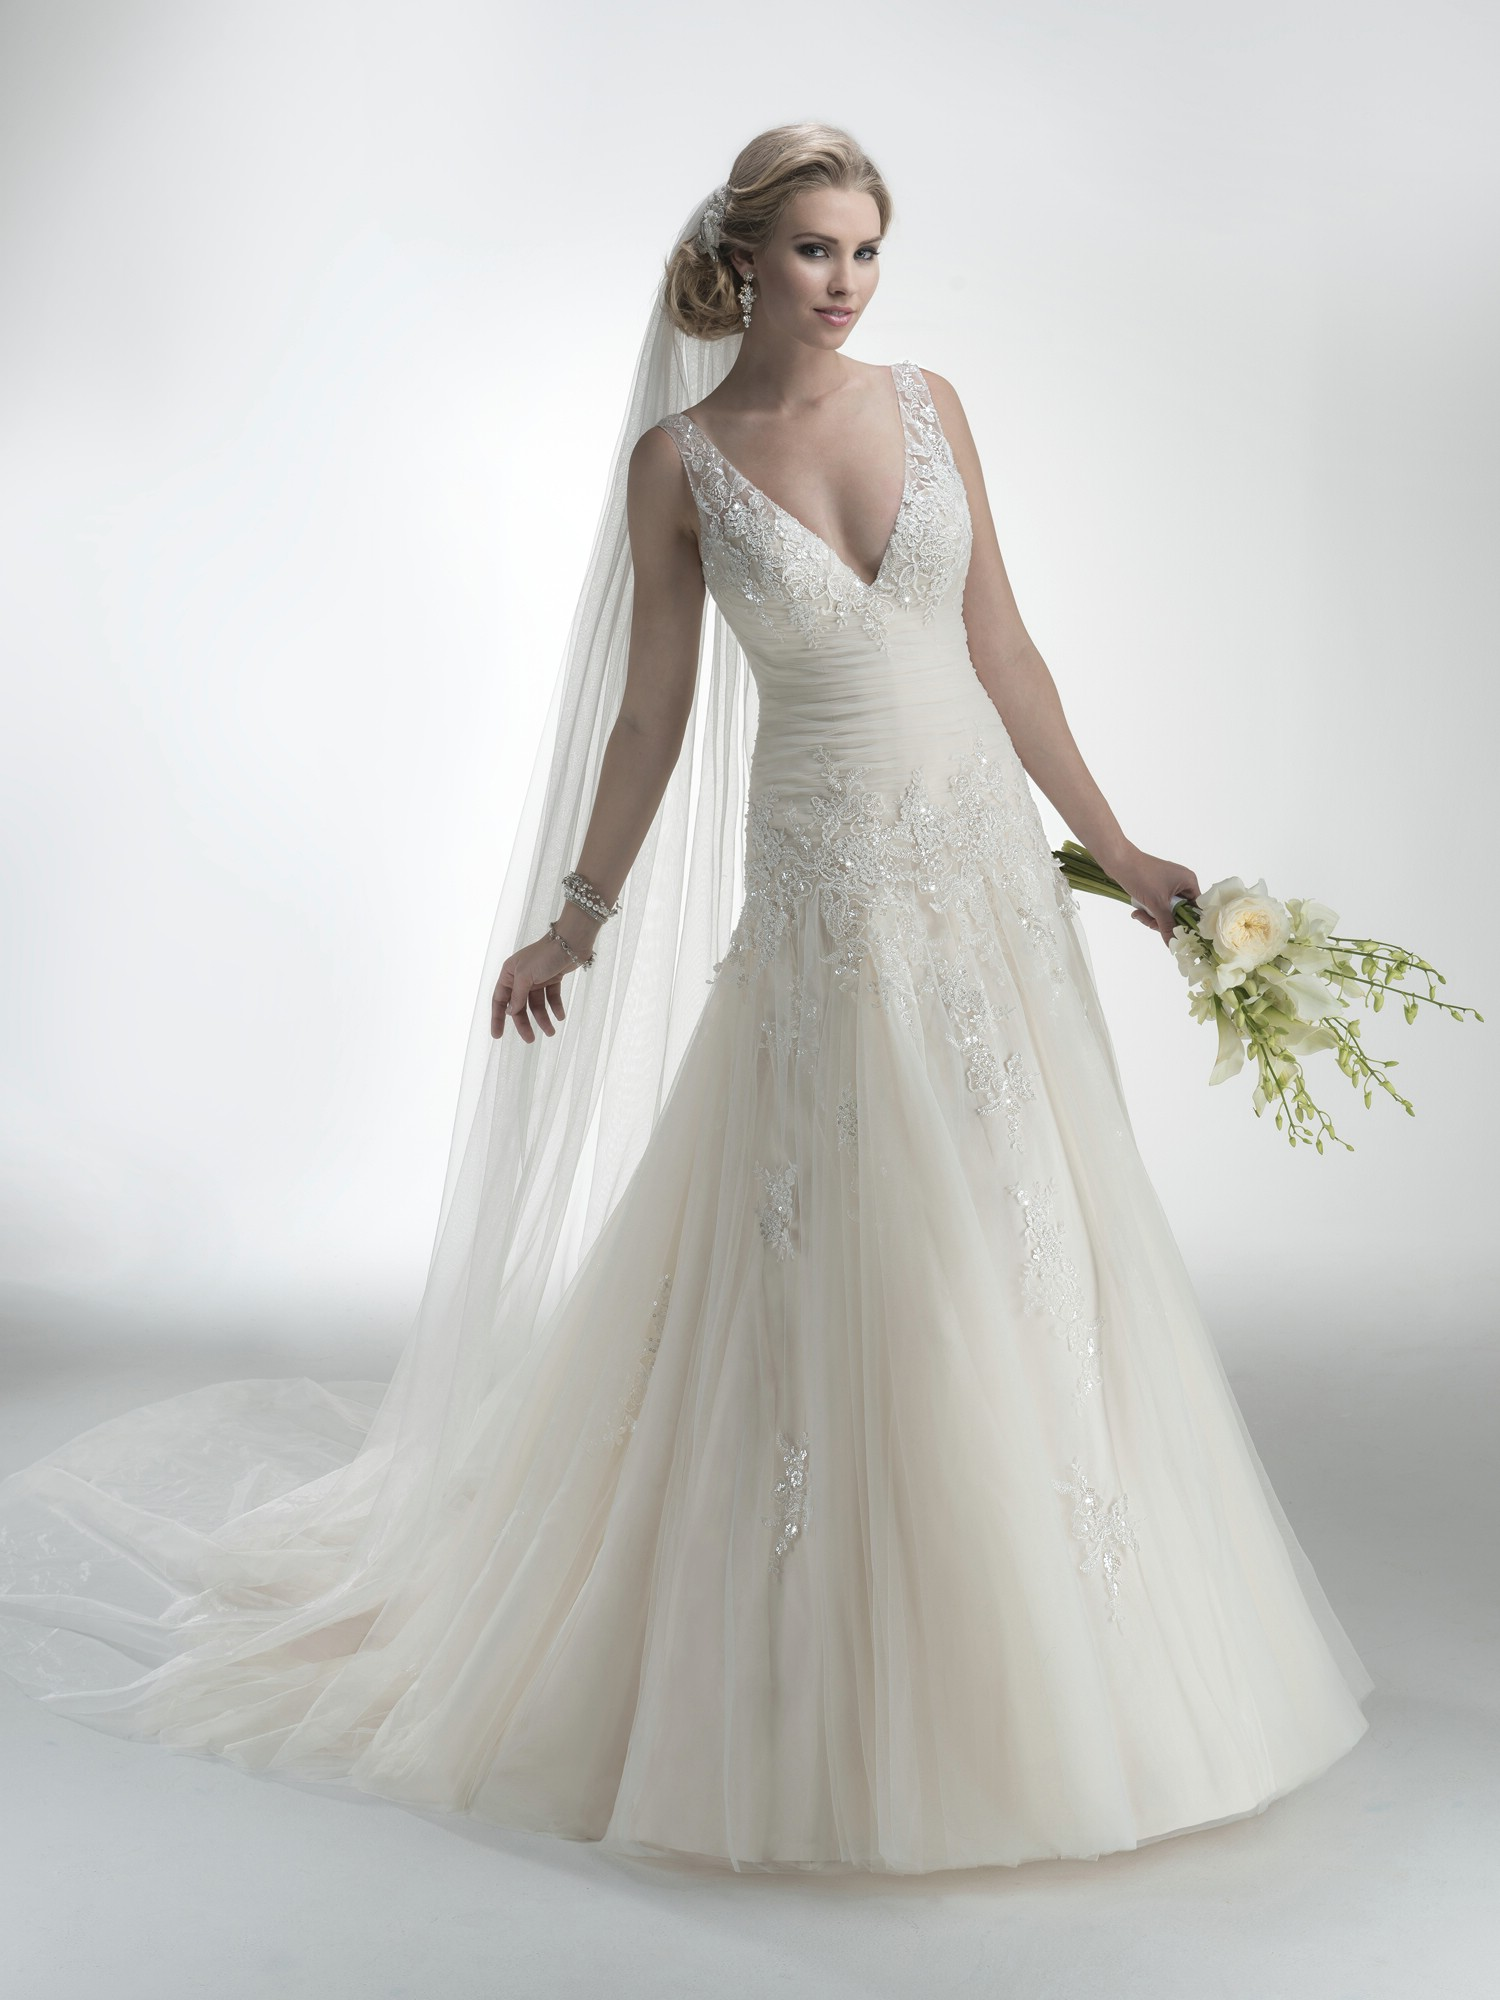 size 16 sale wedding gowns precious memories bridal shop formalwear accessories and tuxedos